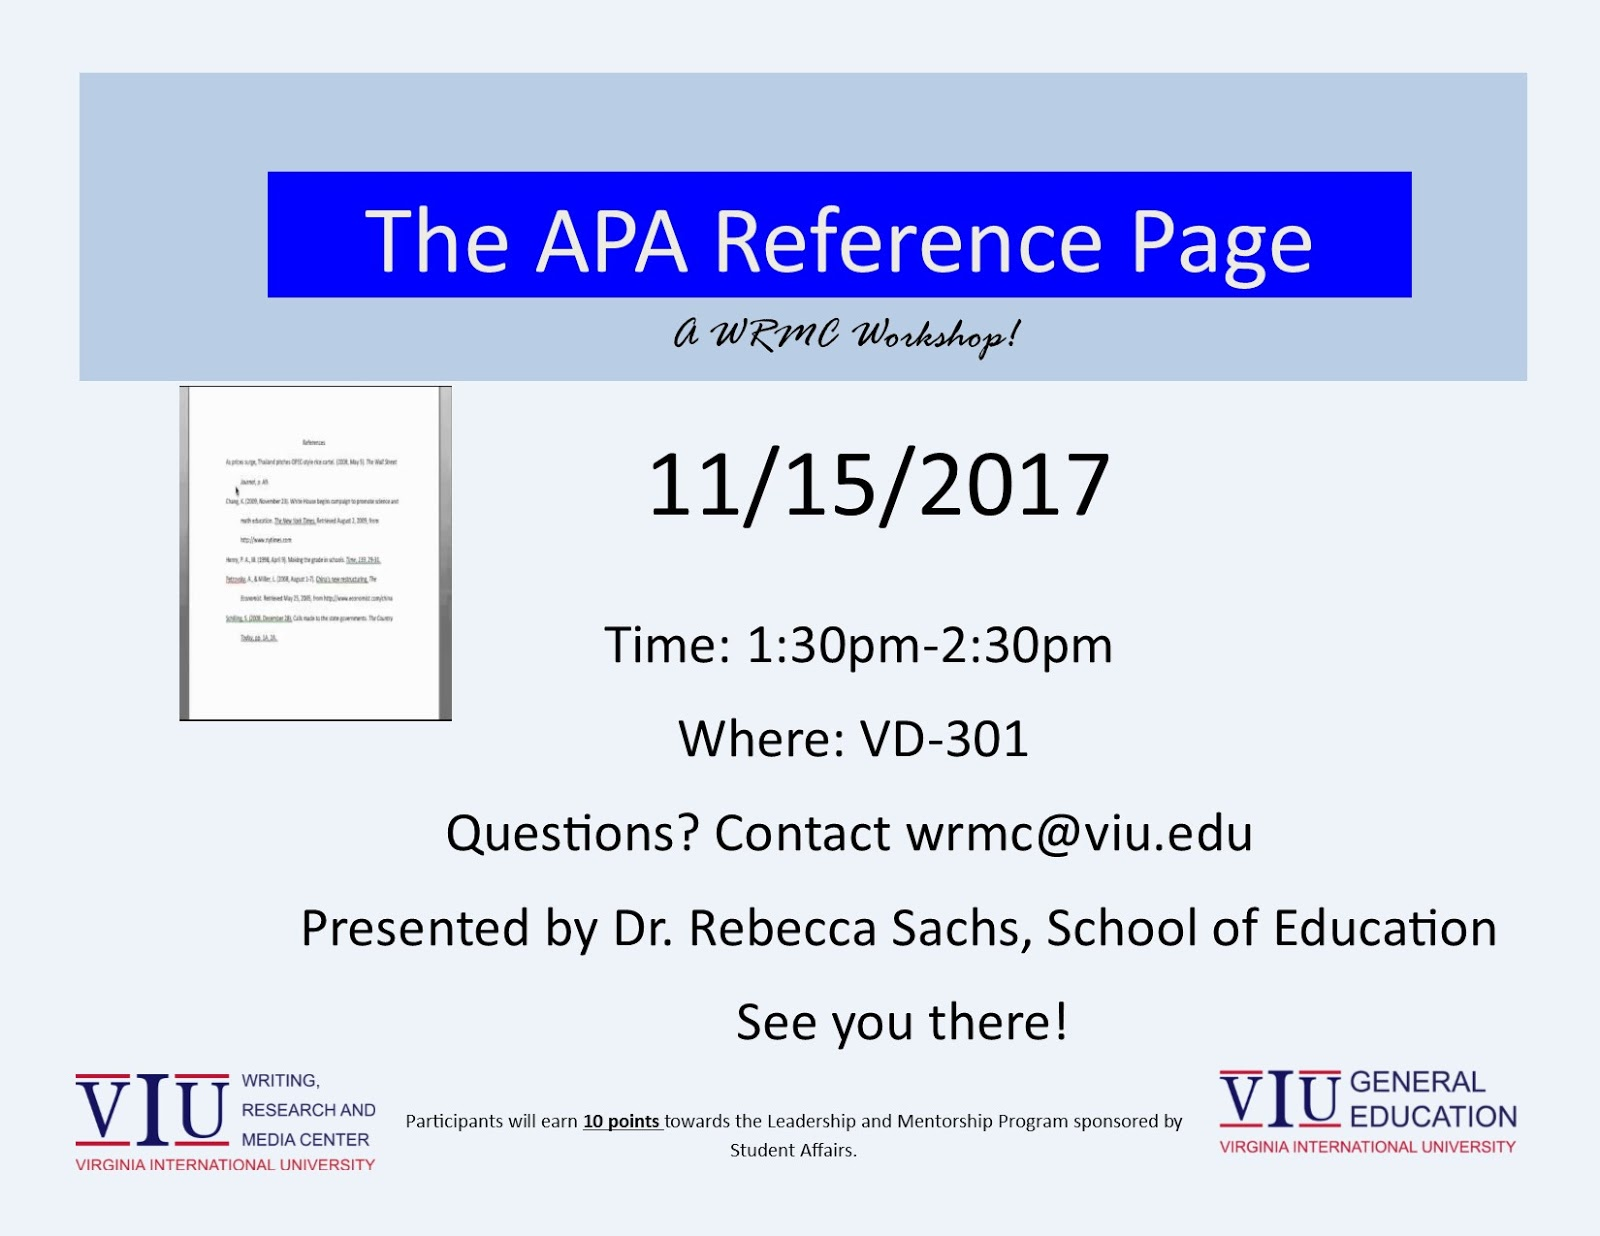 answer apa with reference Discussion posts (apa guidelines) be sure to use apa format when citing your sources (including the text) when making your discussion posts this applies to both short quotations and paraphrasing.